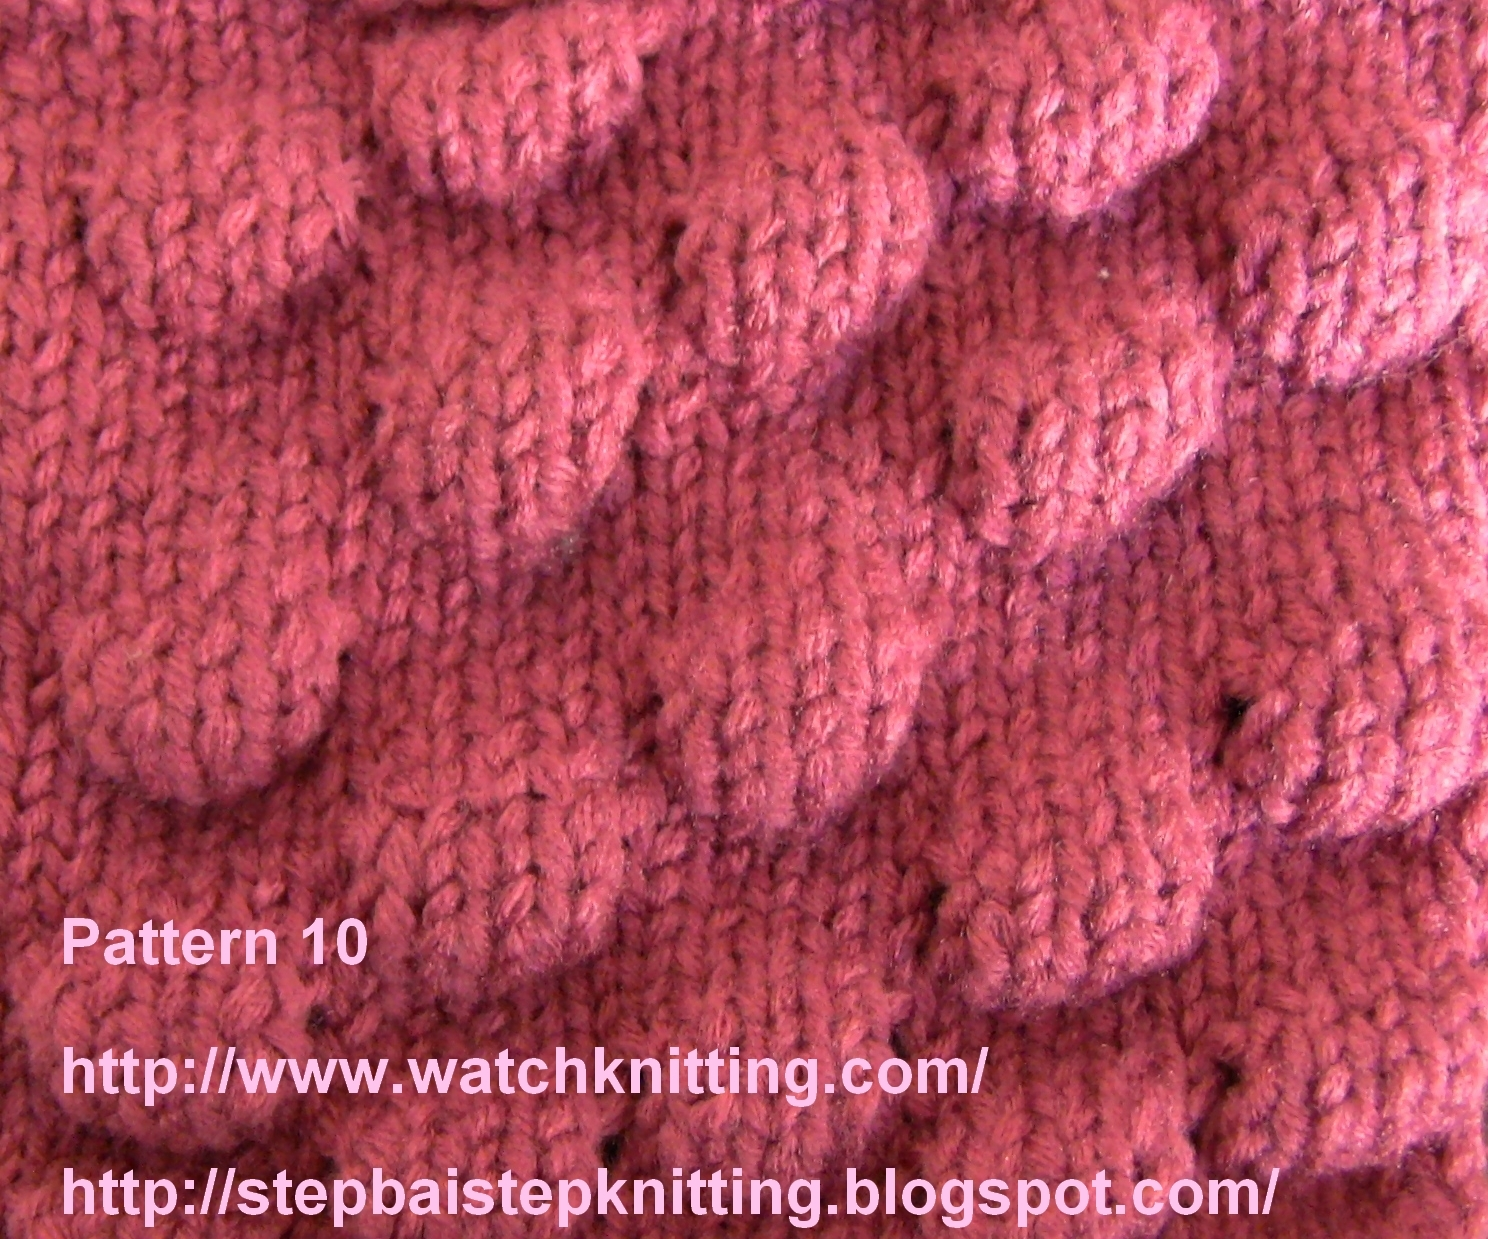 Knitting Patterns Free : Knitting Pattern Central - Free, Online Knitting Patterns